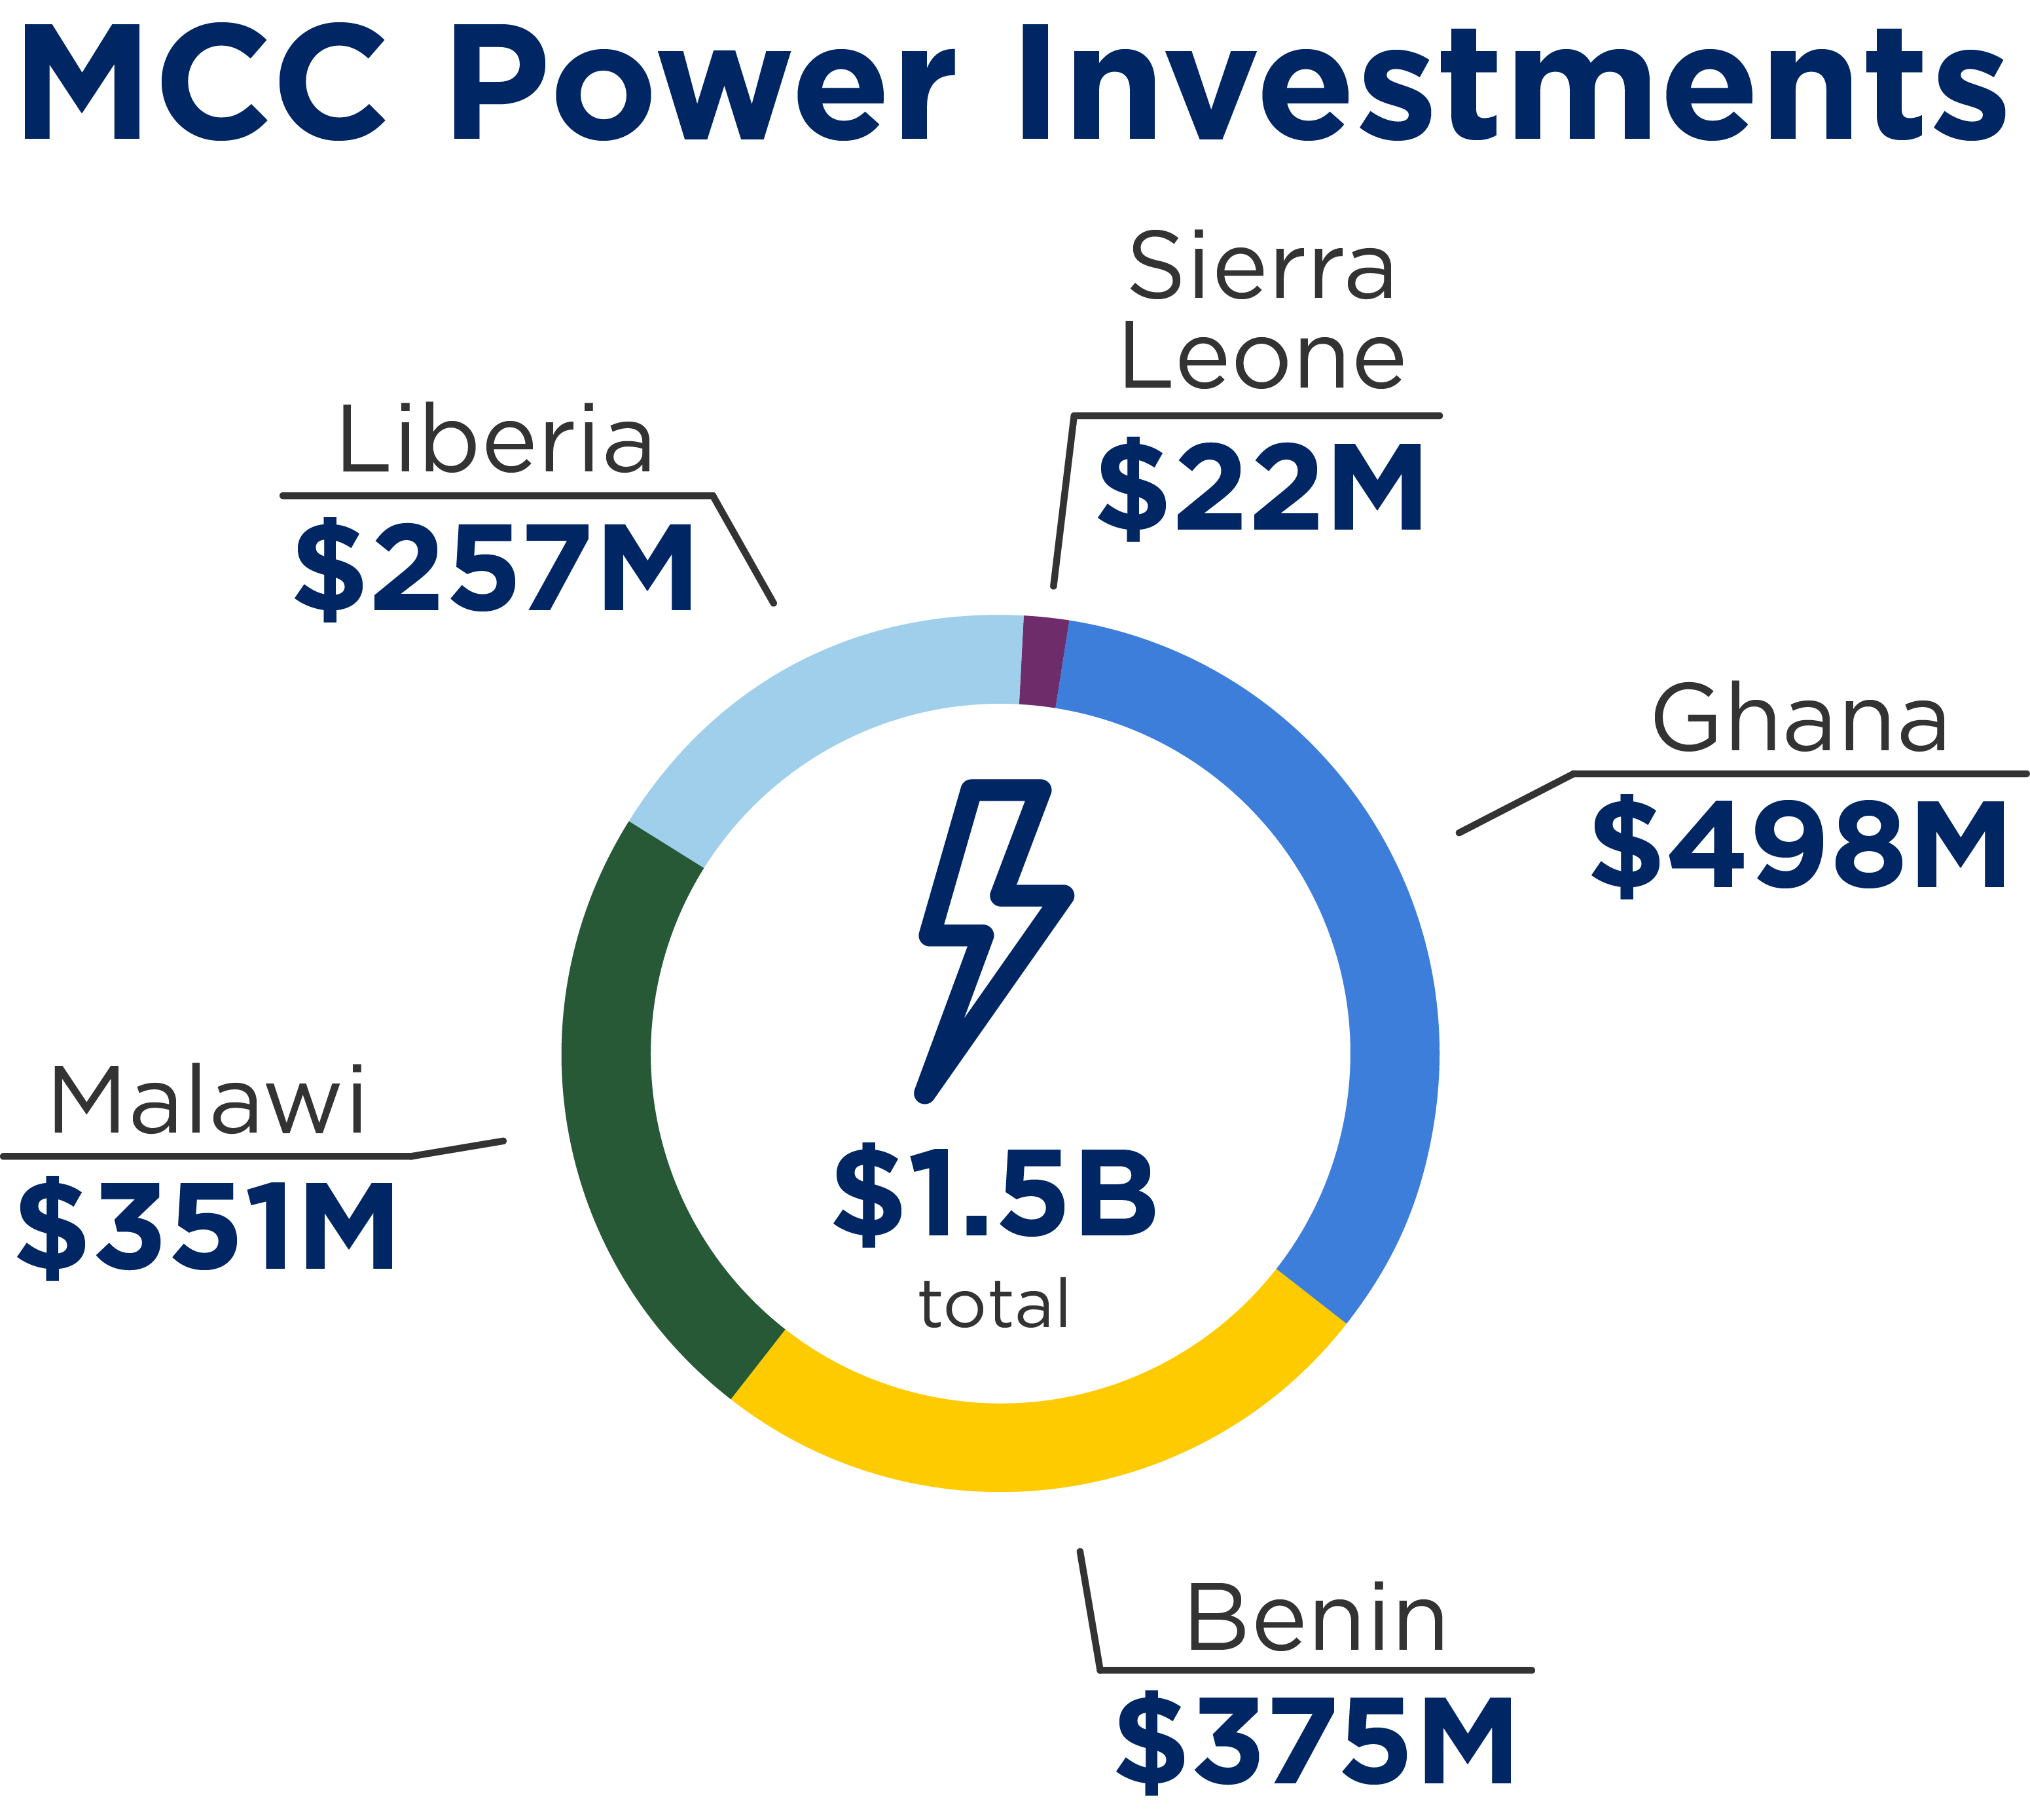 Graphic chart of MCC power investments in Africa (Ghana, Benin, Malawi, Liberia and Sierra Leone) totaling $1.5B.